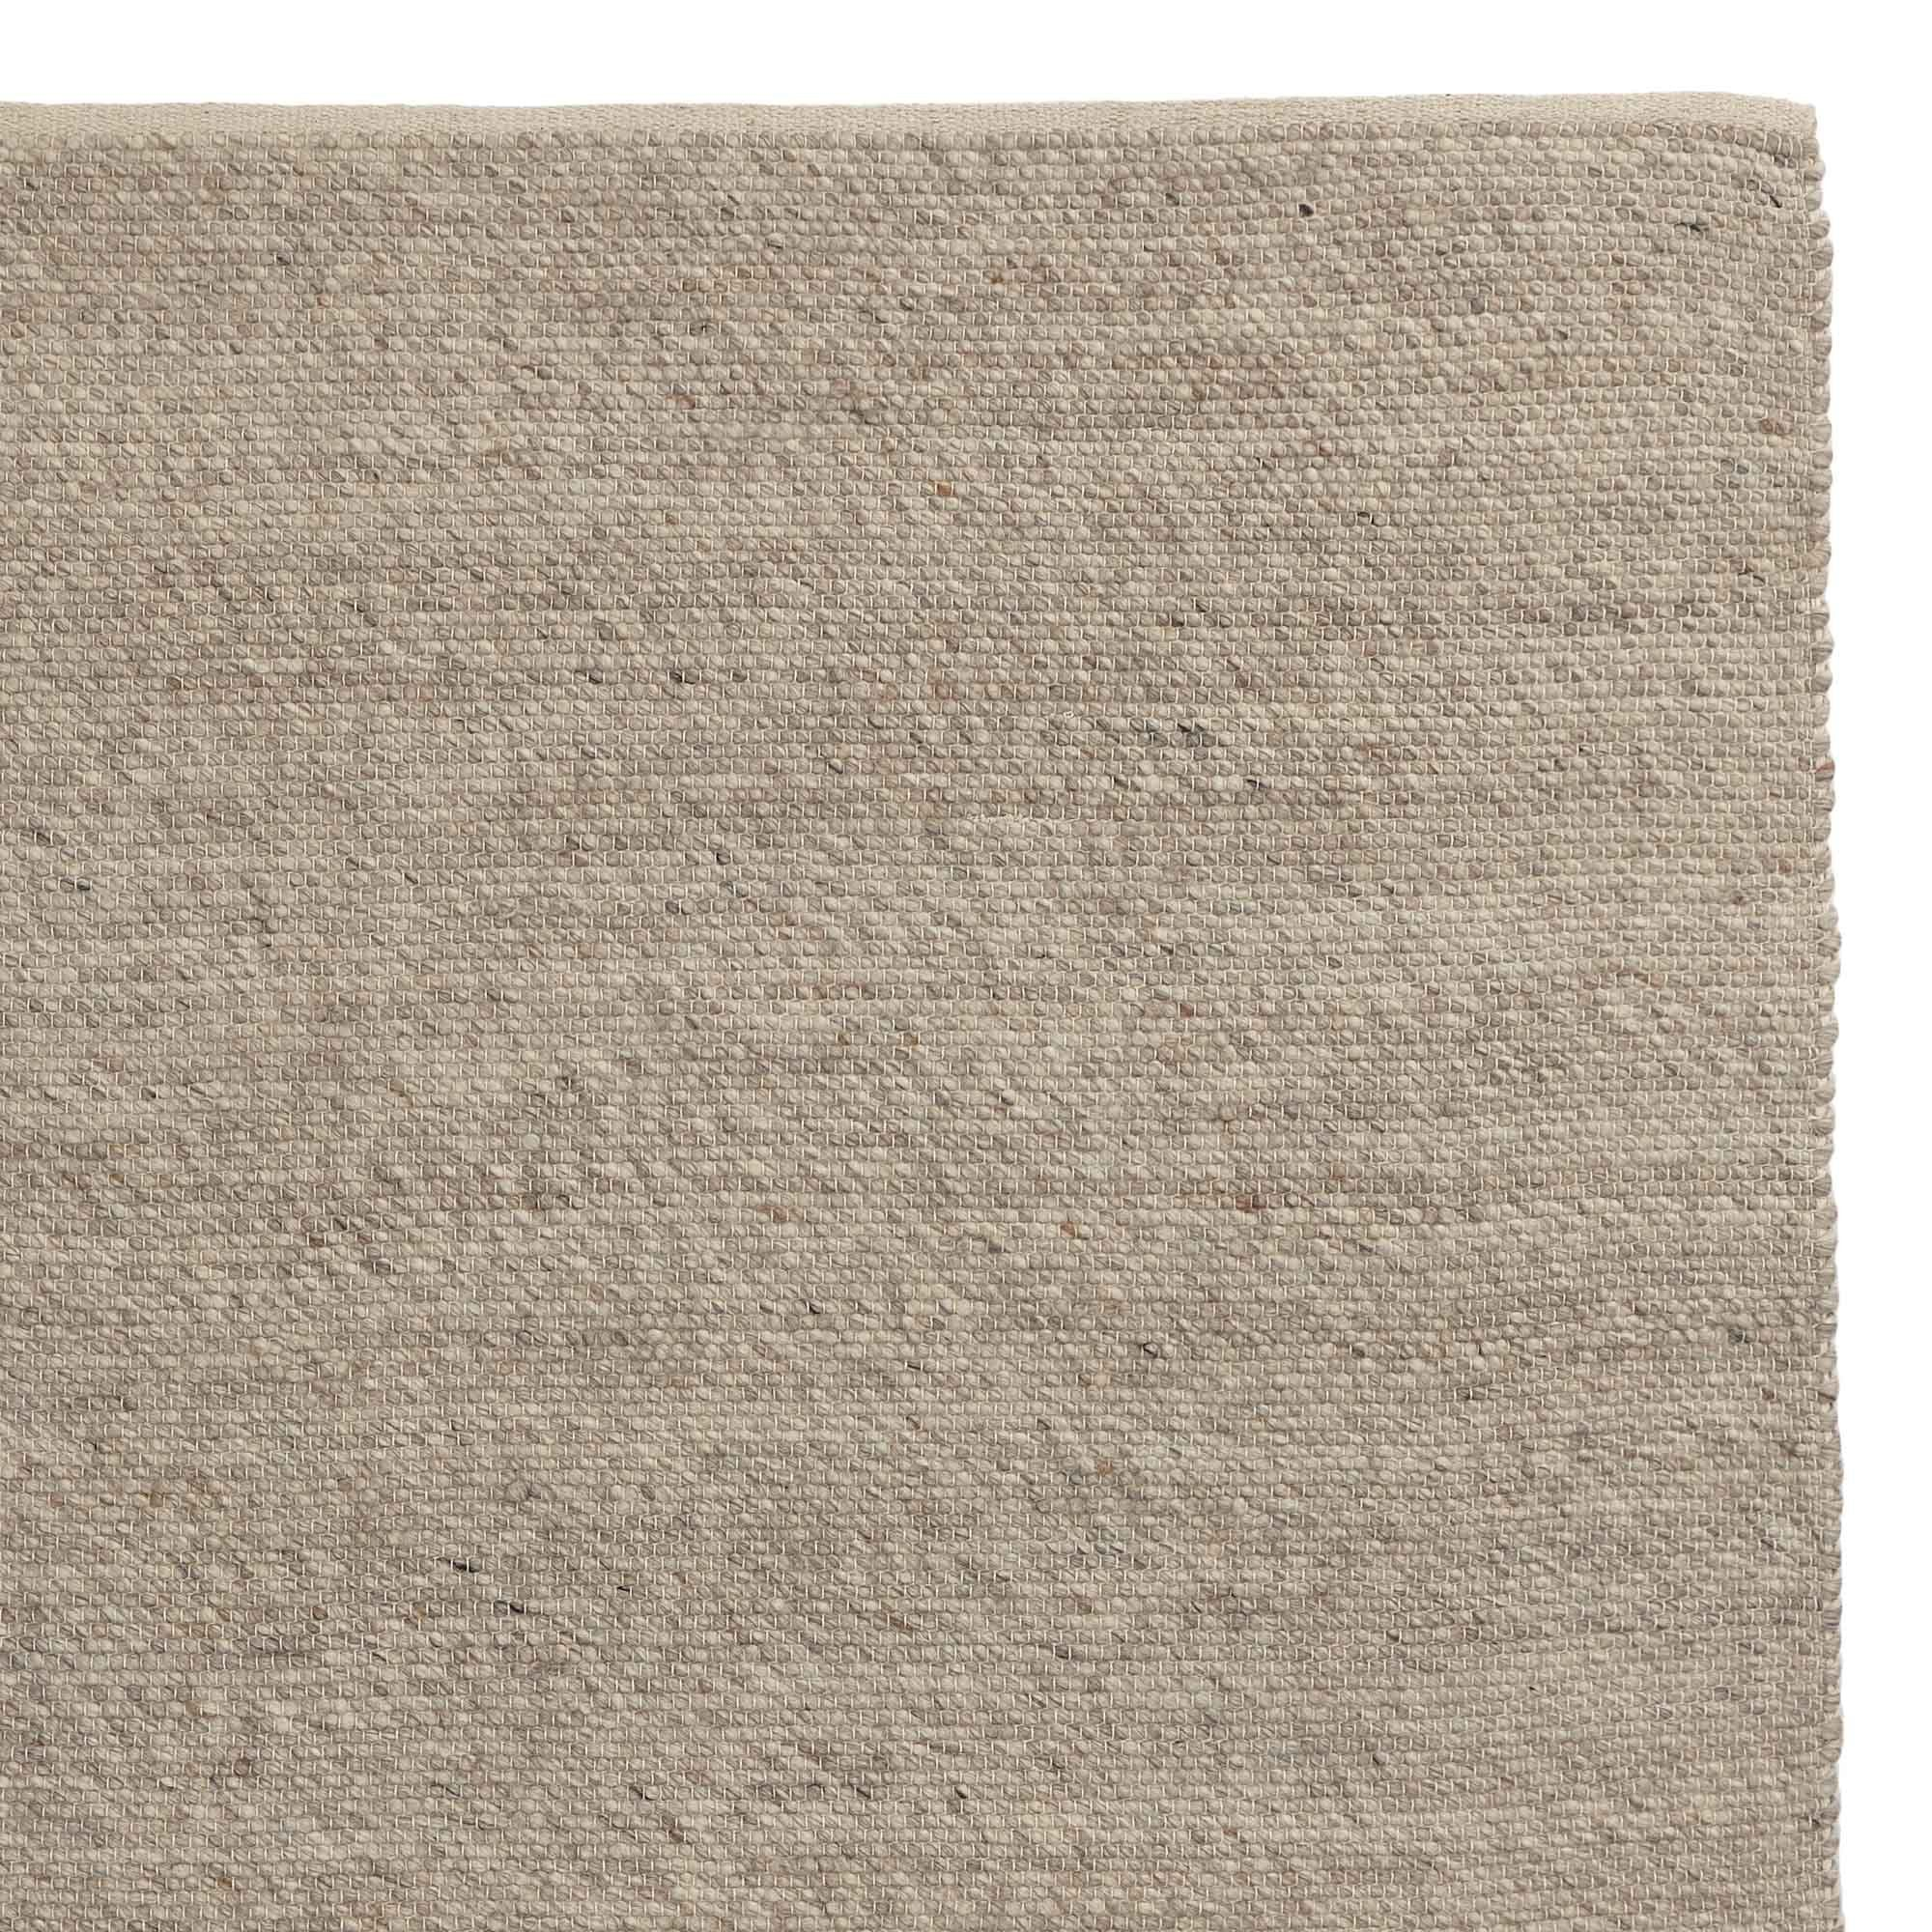 Kesar rug, cream & grey & sand, 60% wool & 15% jute & 25% cotton